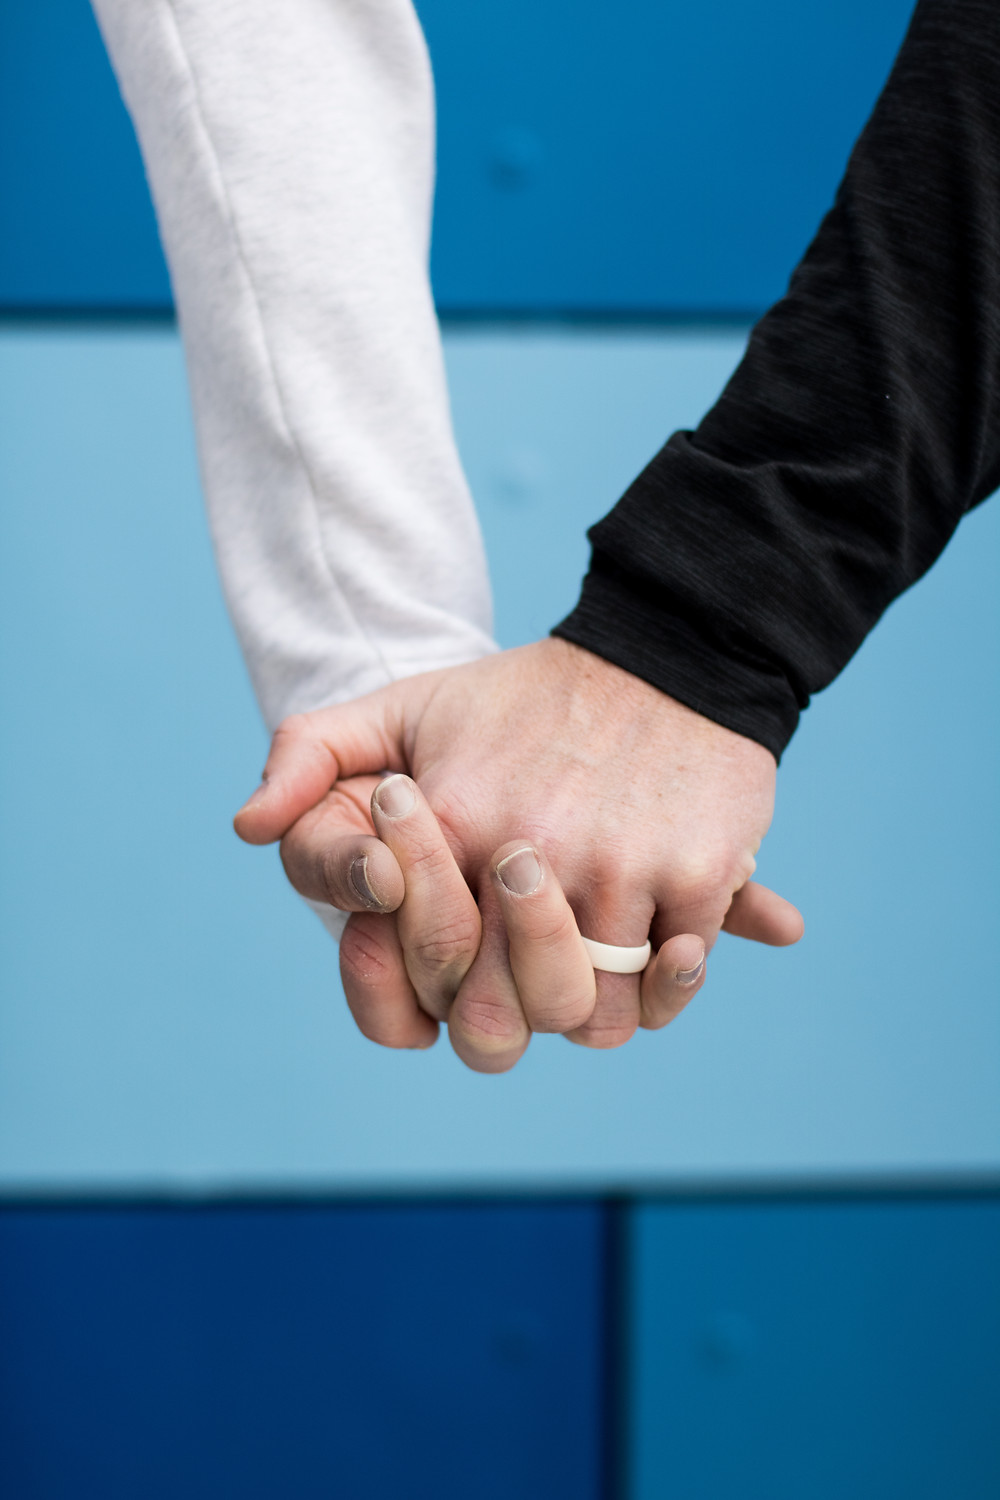 Lee Ann Jolly & Burke Jolly holding hands, it's all about relationship.